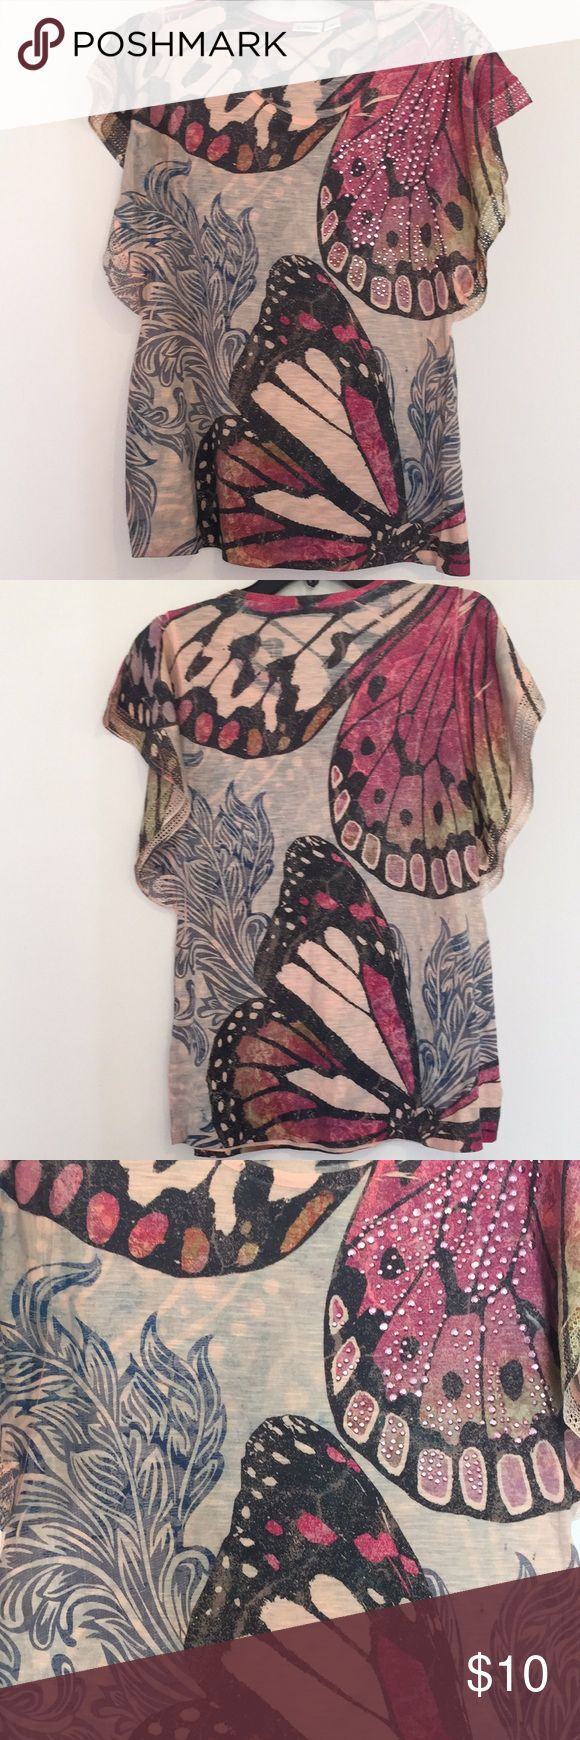 Cato Butterfly Top Cato butterfly top, size Medium. Cato Tops